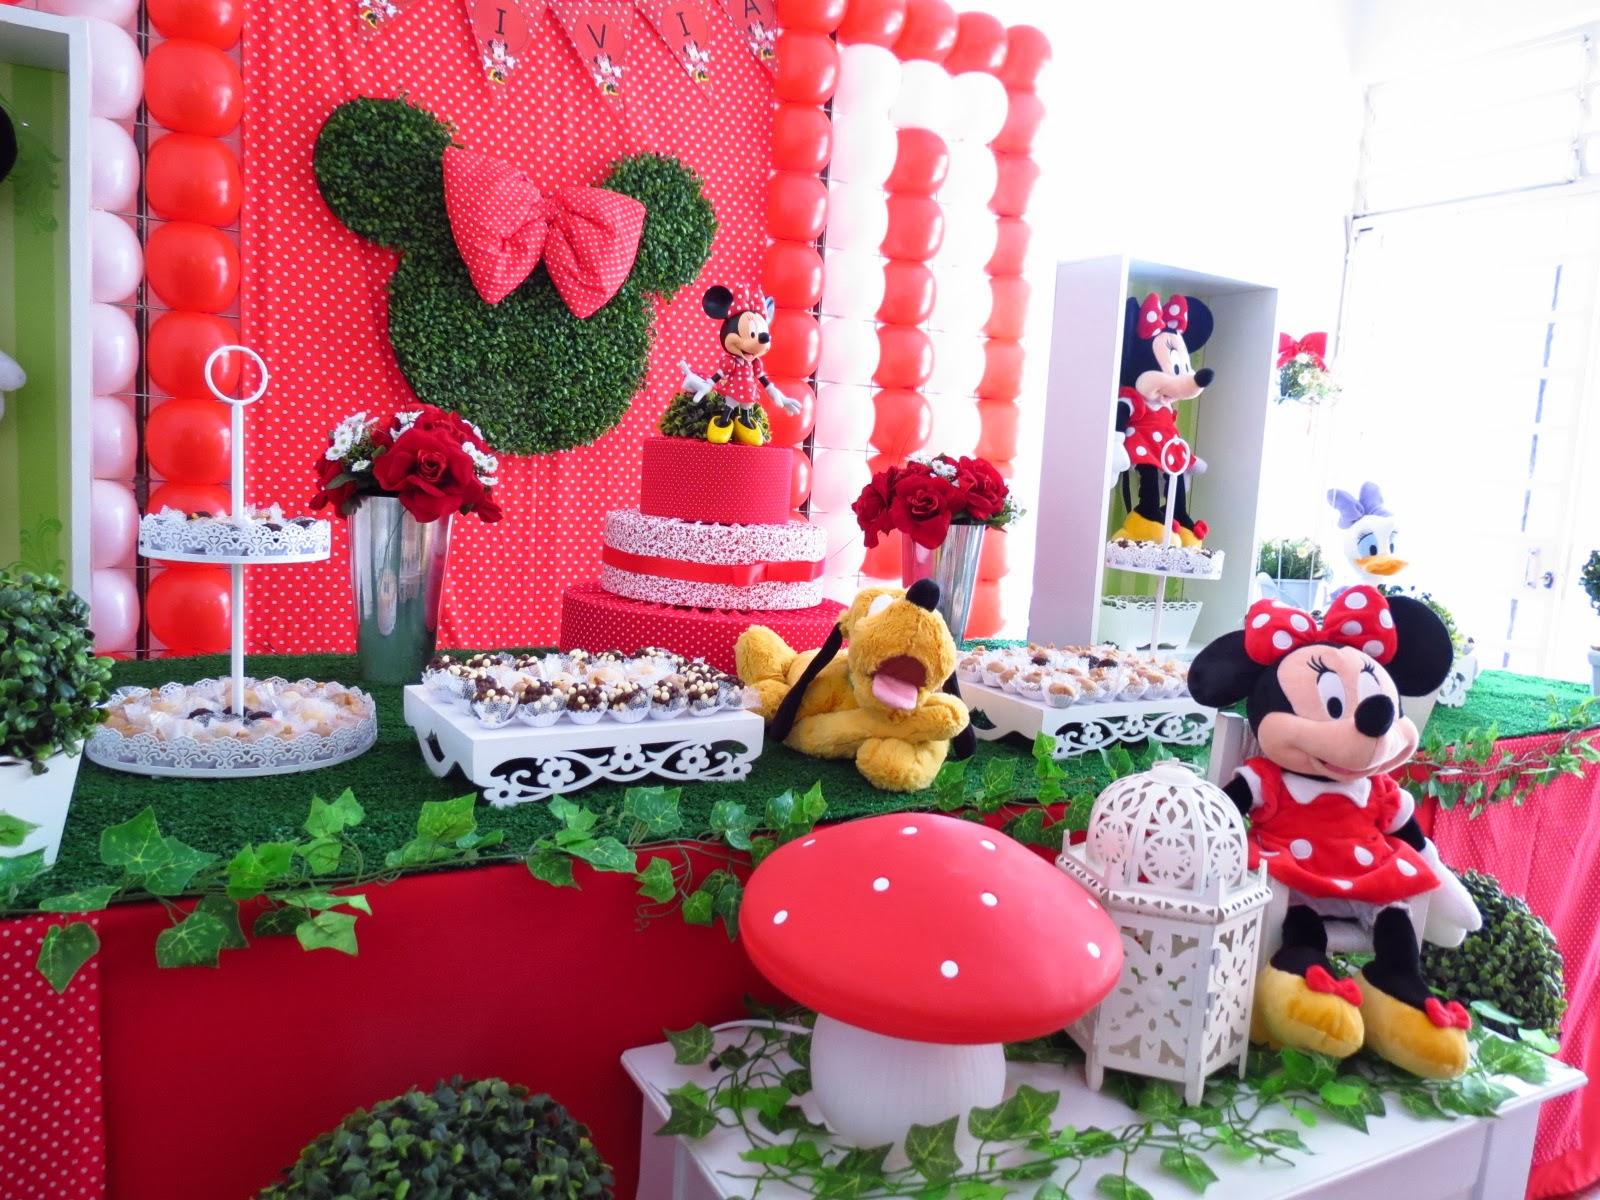 Beula decoraciones decoracion de eventos tematicos e - Productos de decoracion ...